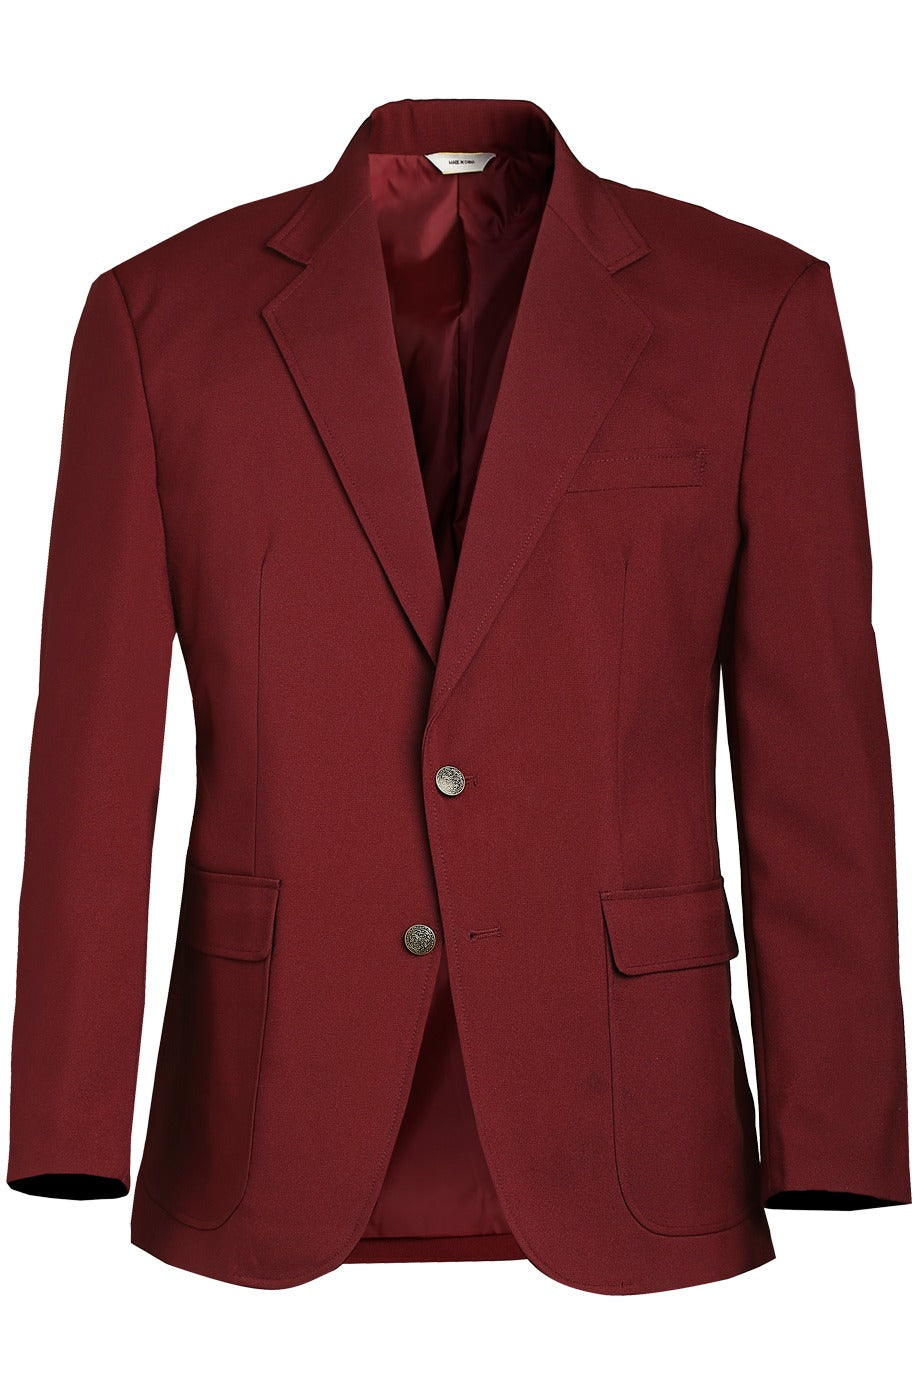 Men's Burgundy Value Blazer